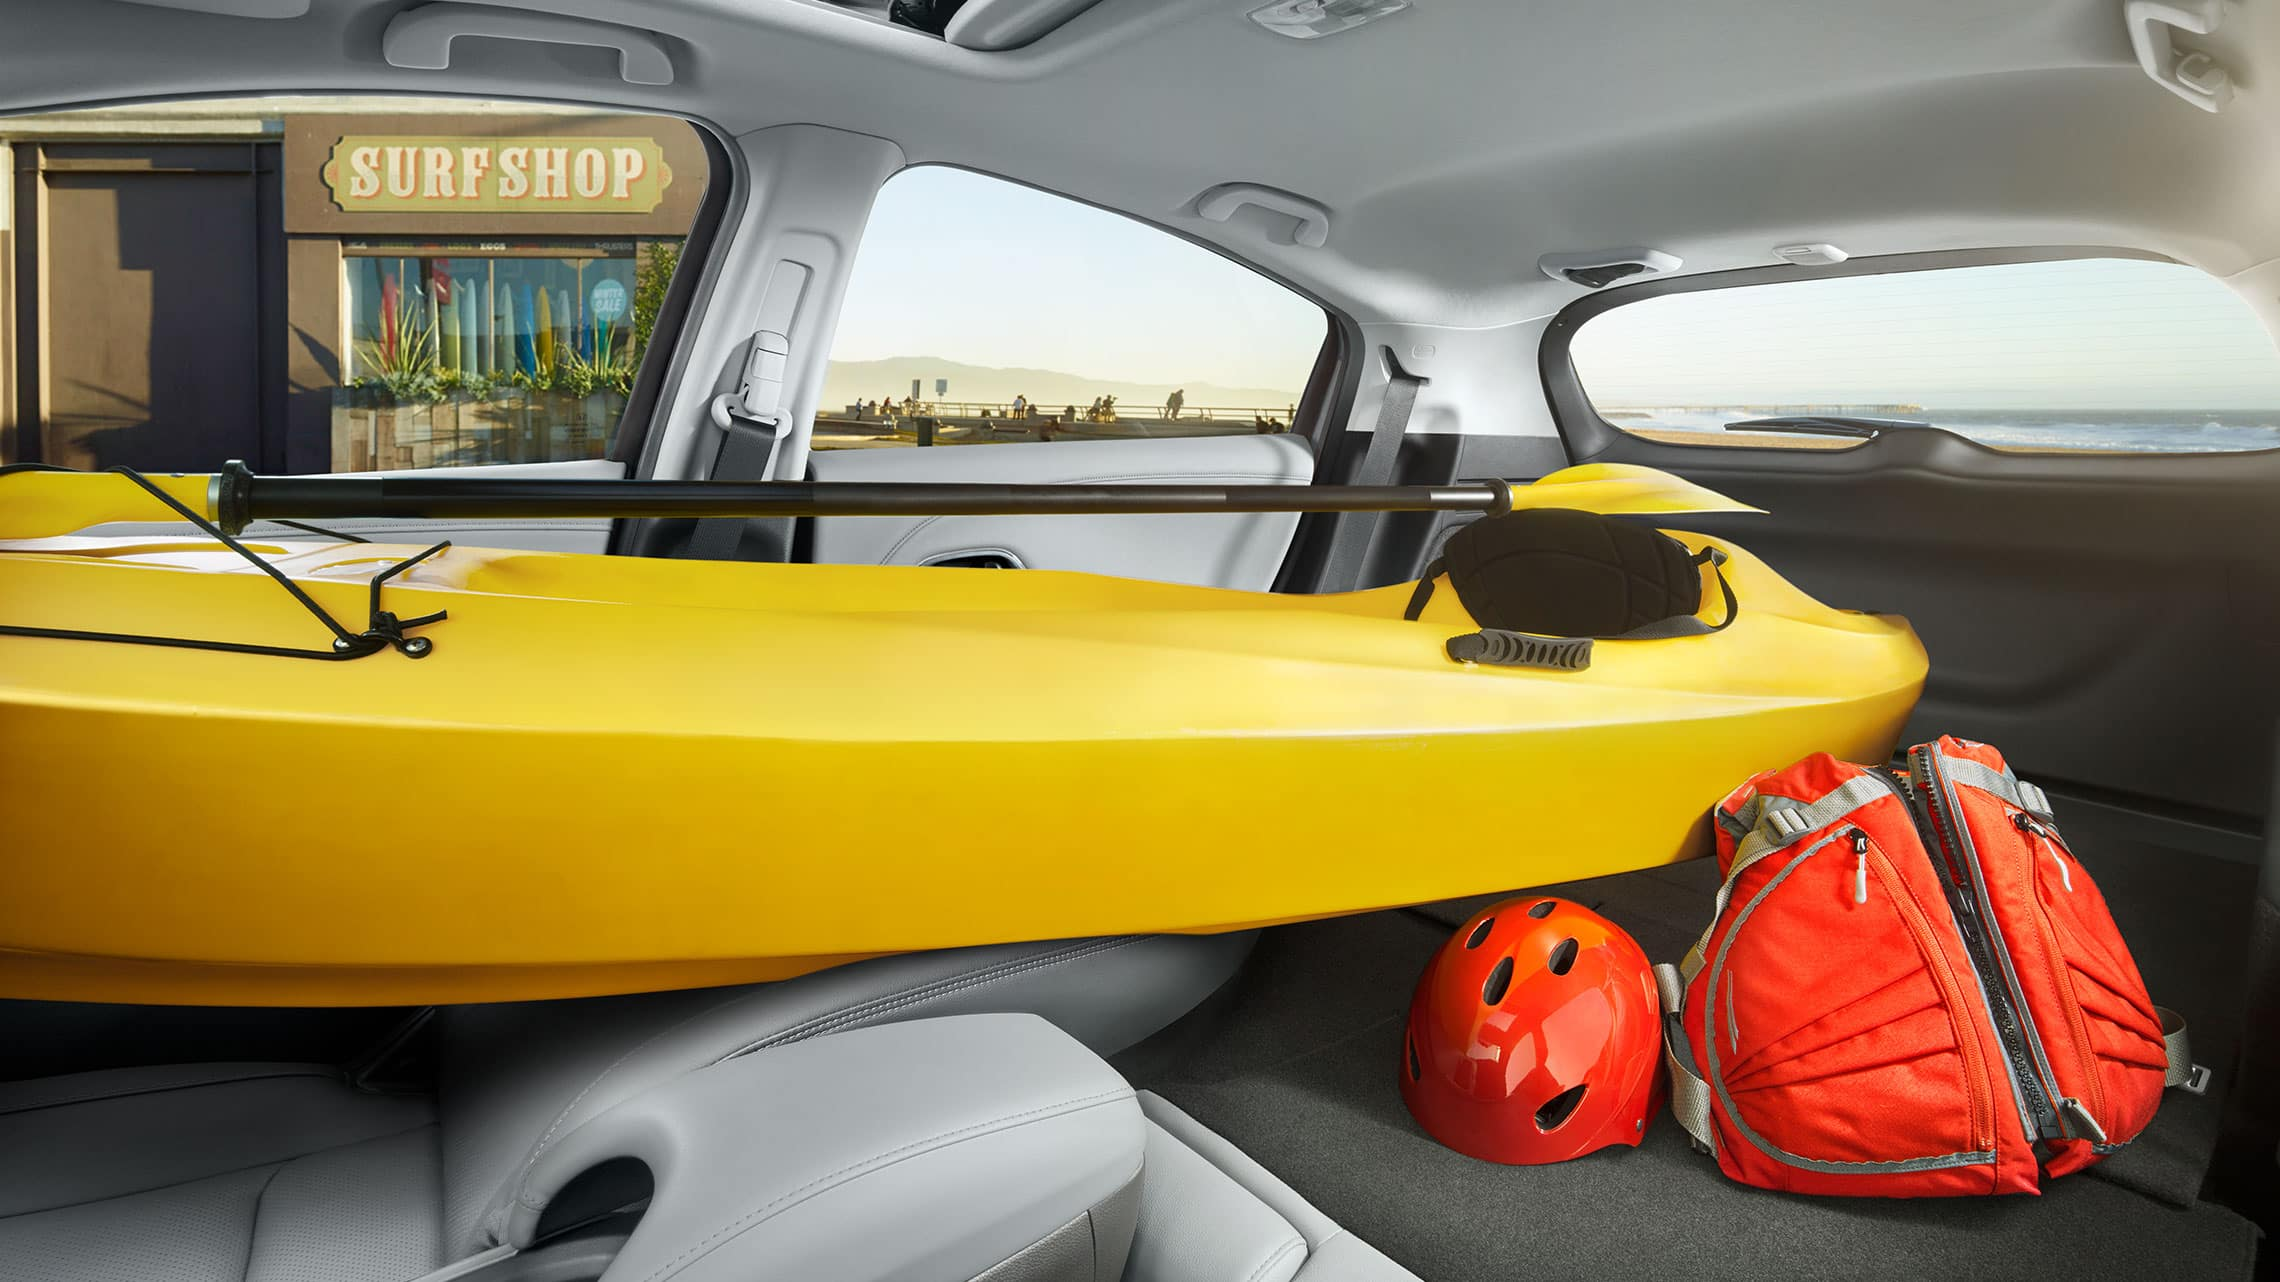 Interior view of the 2019 Honda HR-V Touring in Gray Leather with all rear seats and passenger seat folded down storing a kayak and luggage.